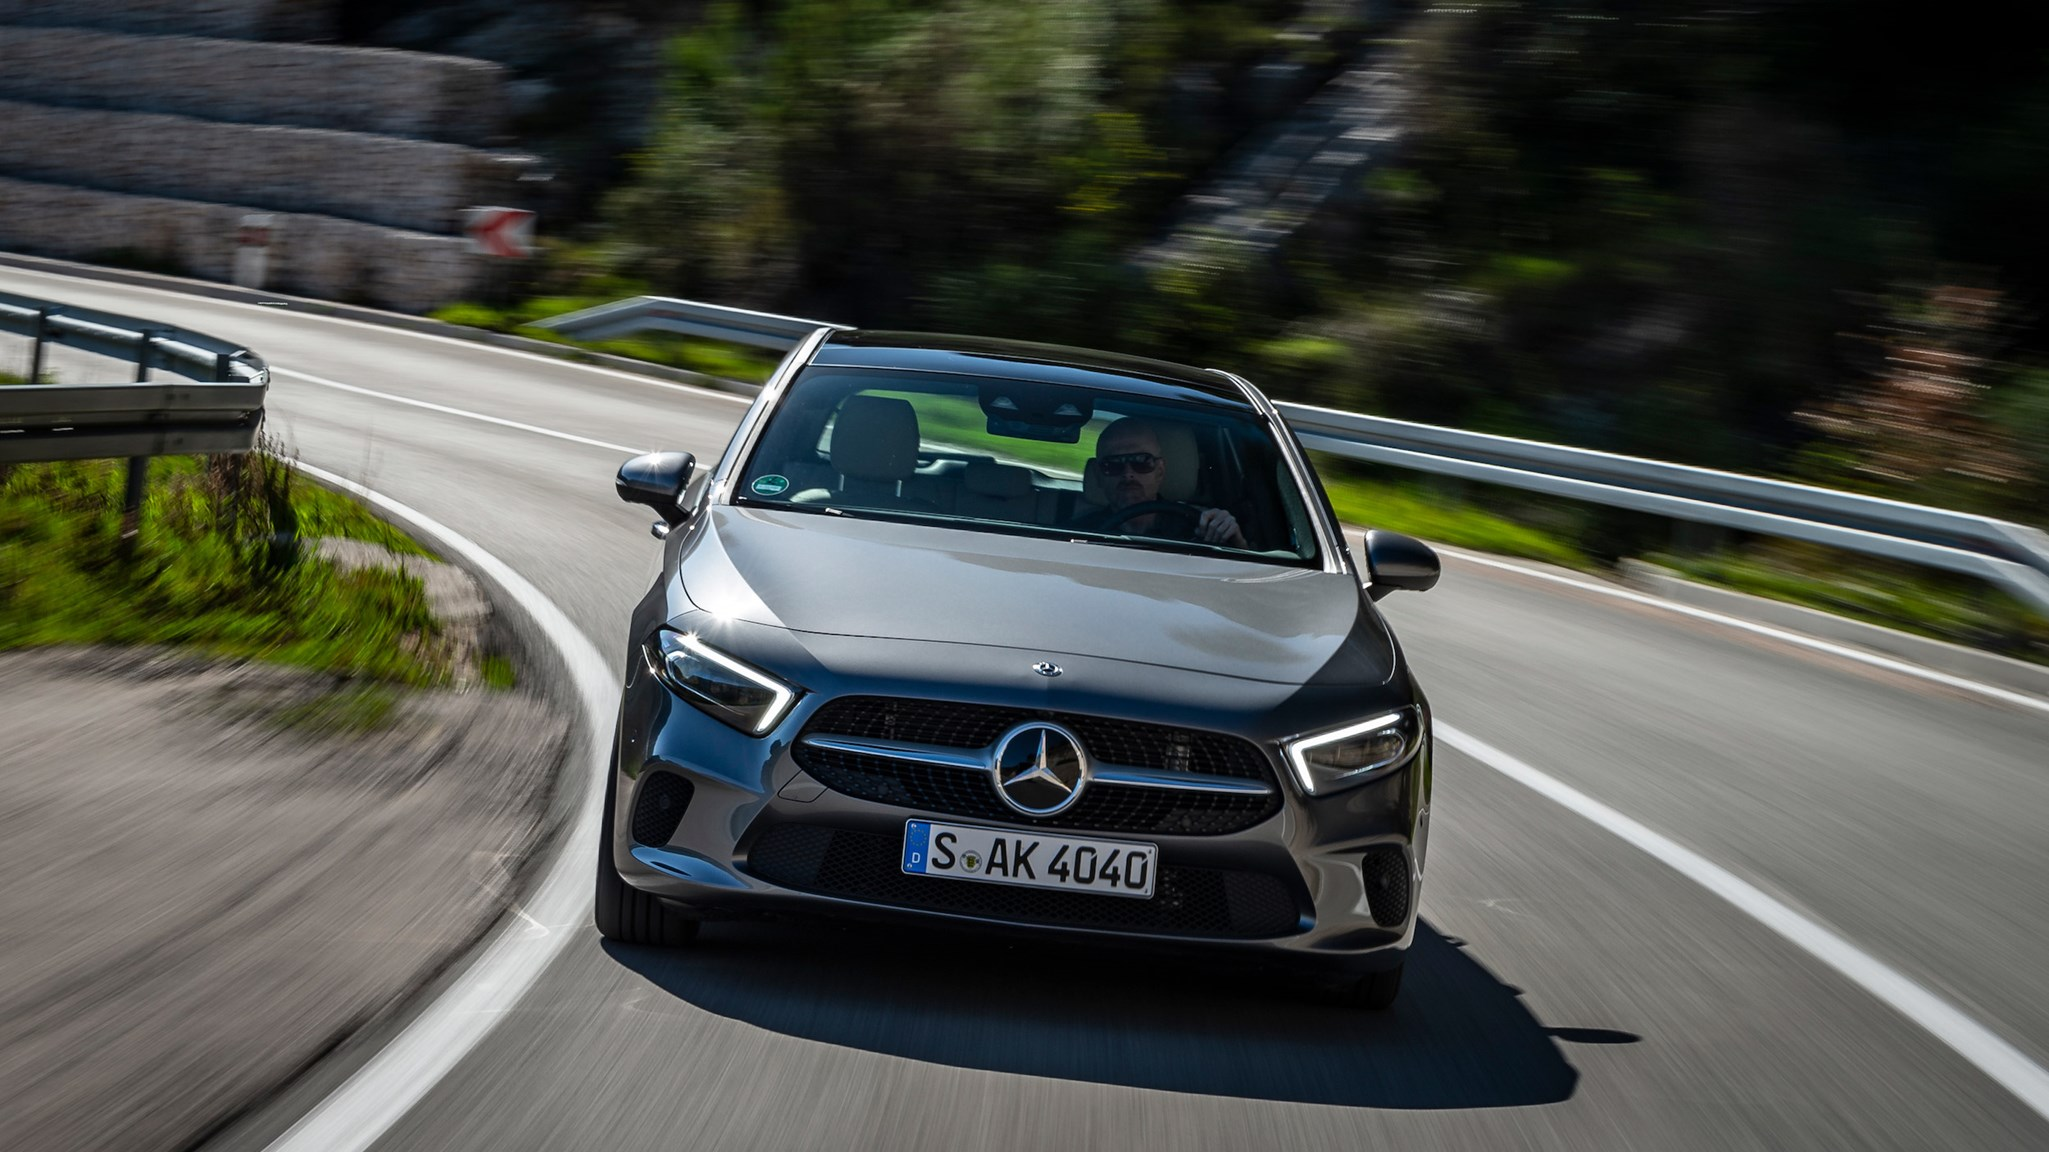 mercedes a class 2018 review is the hatch finally a worthy merc by car magazine. Black Bedroom Furniture Sets. Home Design Ideas